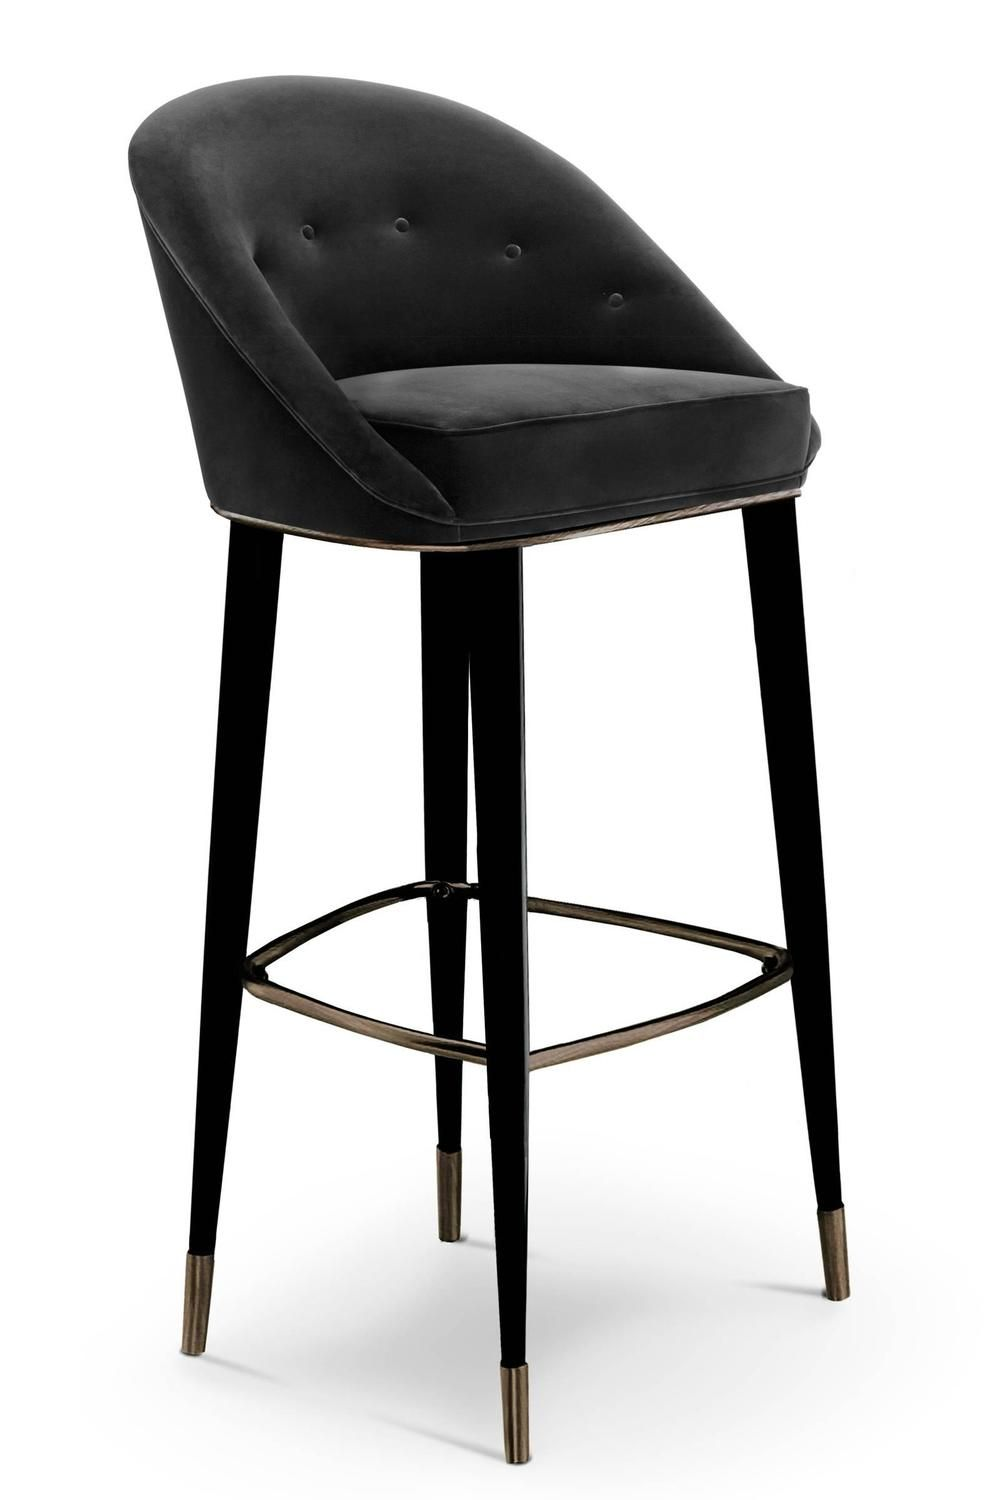 Bar Stool Myla with Cotton Velvet seat and Black Lacquered Legs | From a unique collection  sc 1 st  Pinterest & Bar Stool Myla with Cotton Velvet seat and Black Lacquered Legs ... islam-shia.org